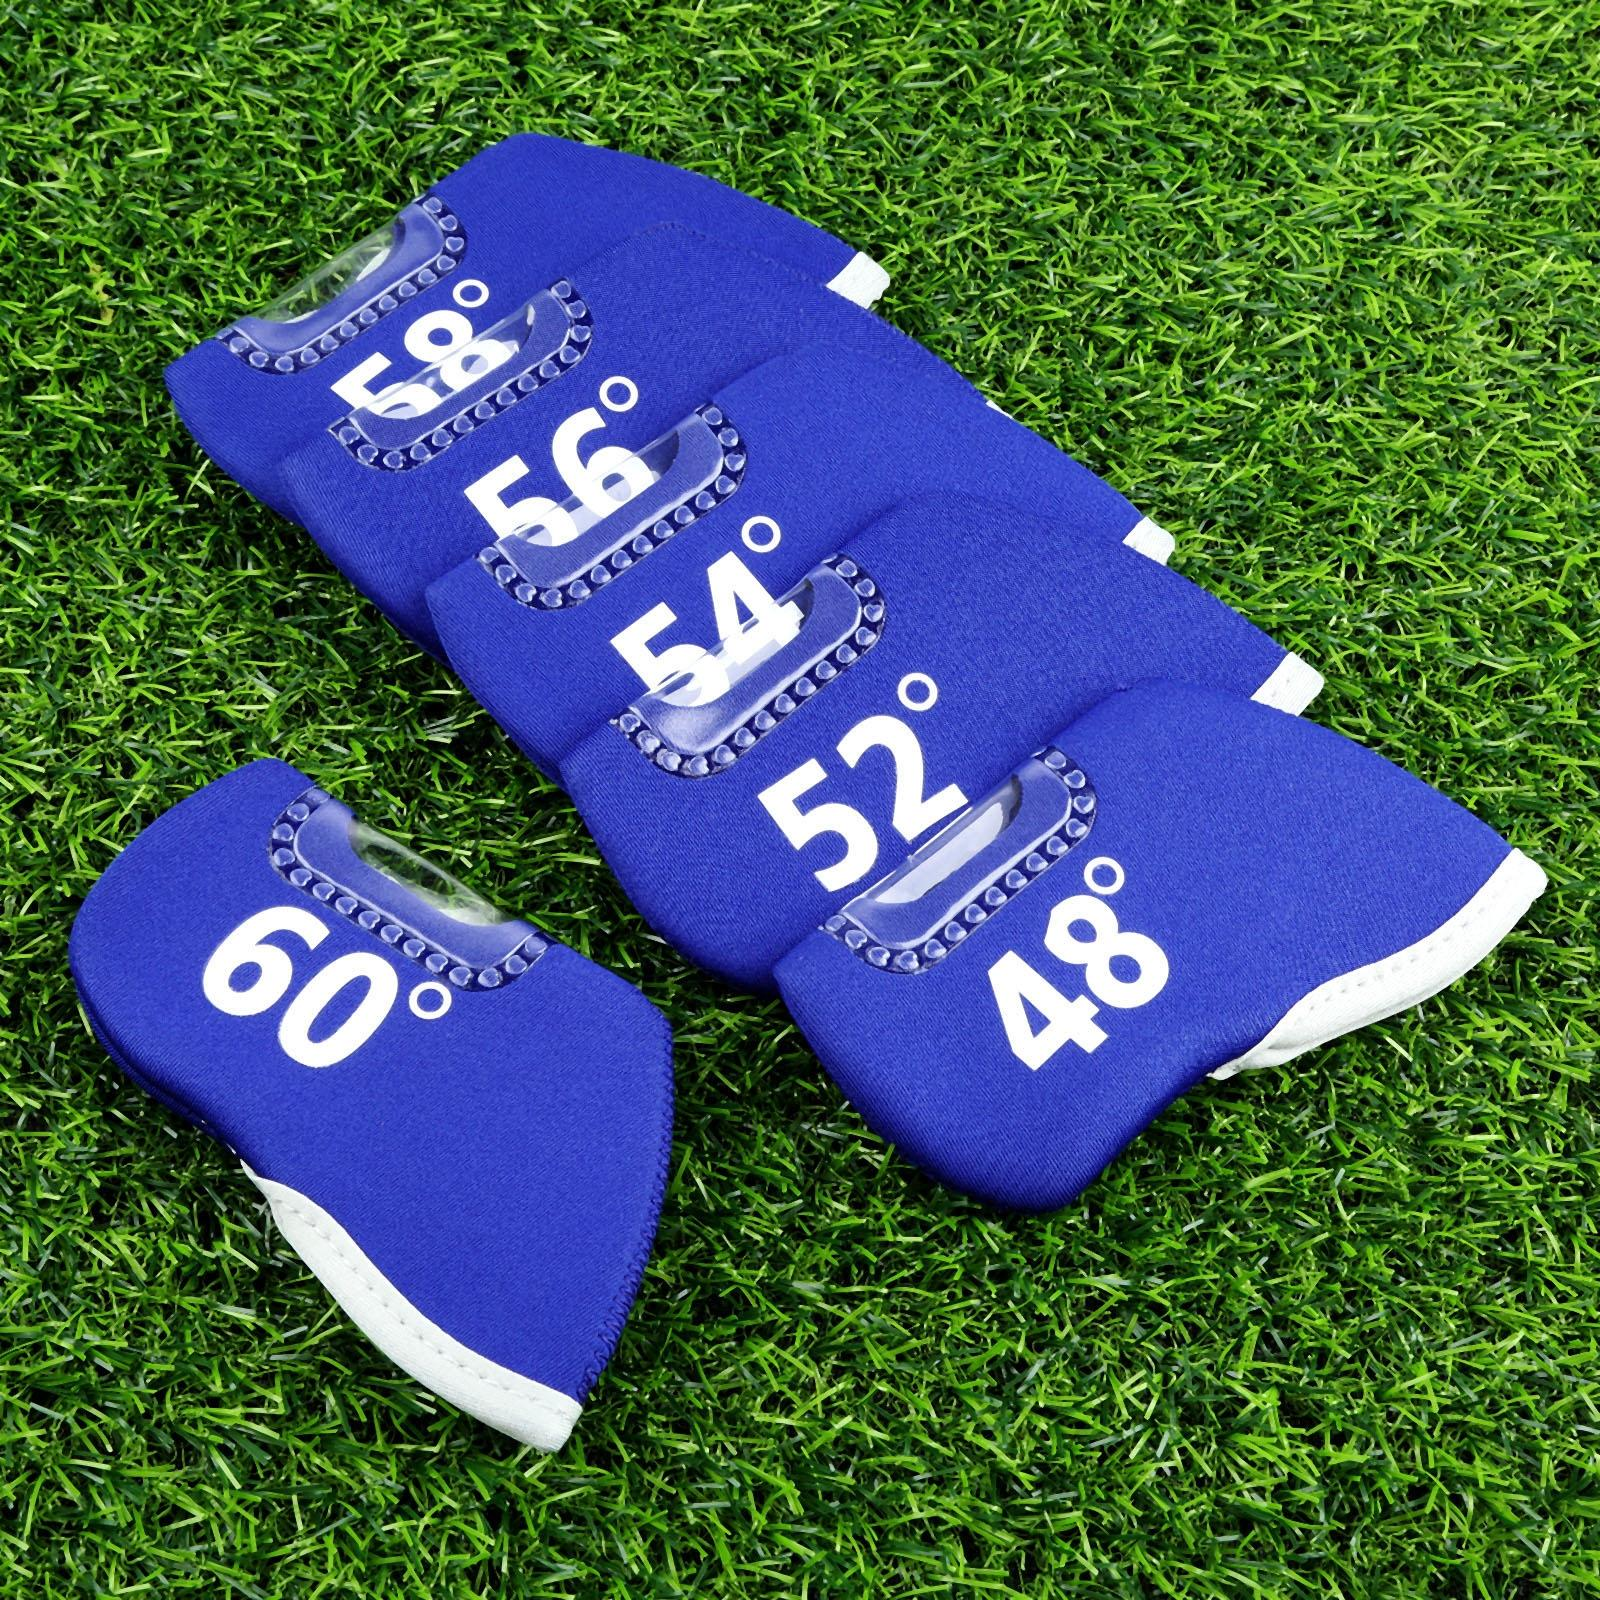 Blue Golf Club Iron Head Covers Neoprene Golf Headcover Club Heads Putter Protector Set Protective Cover With Window and Numbers